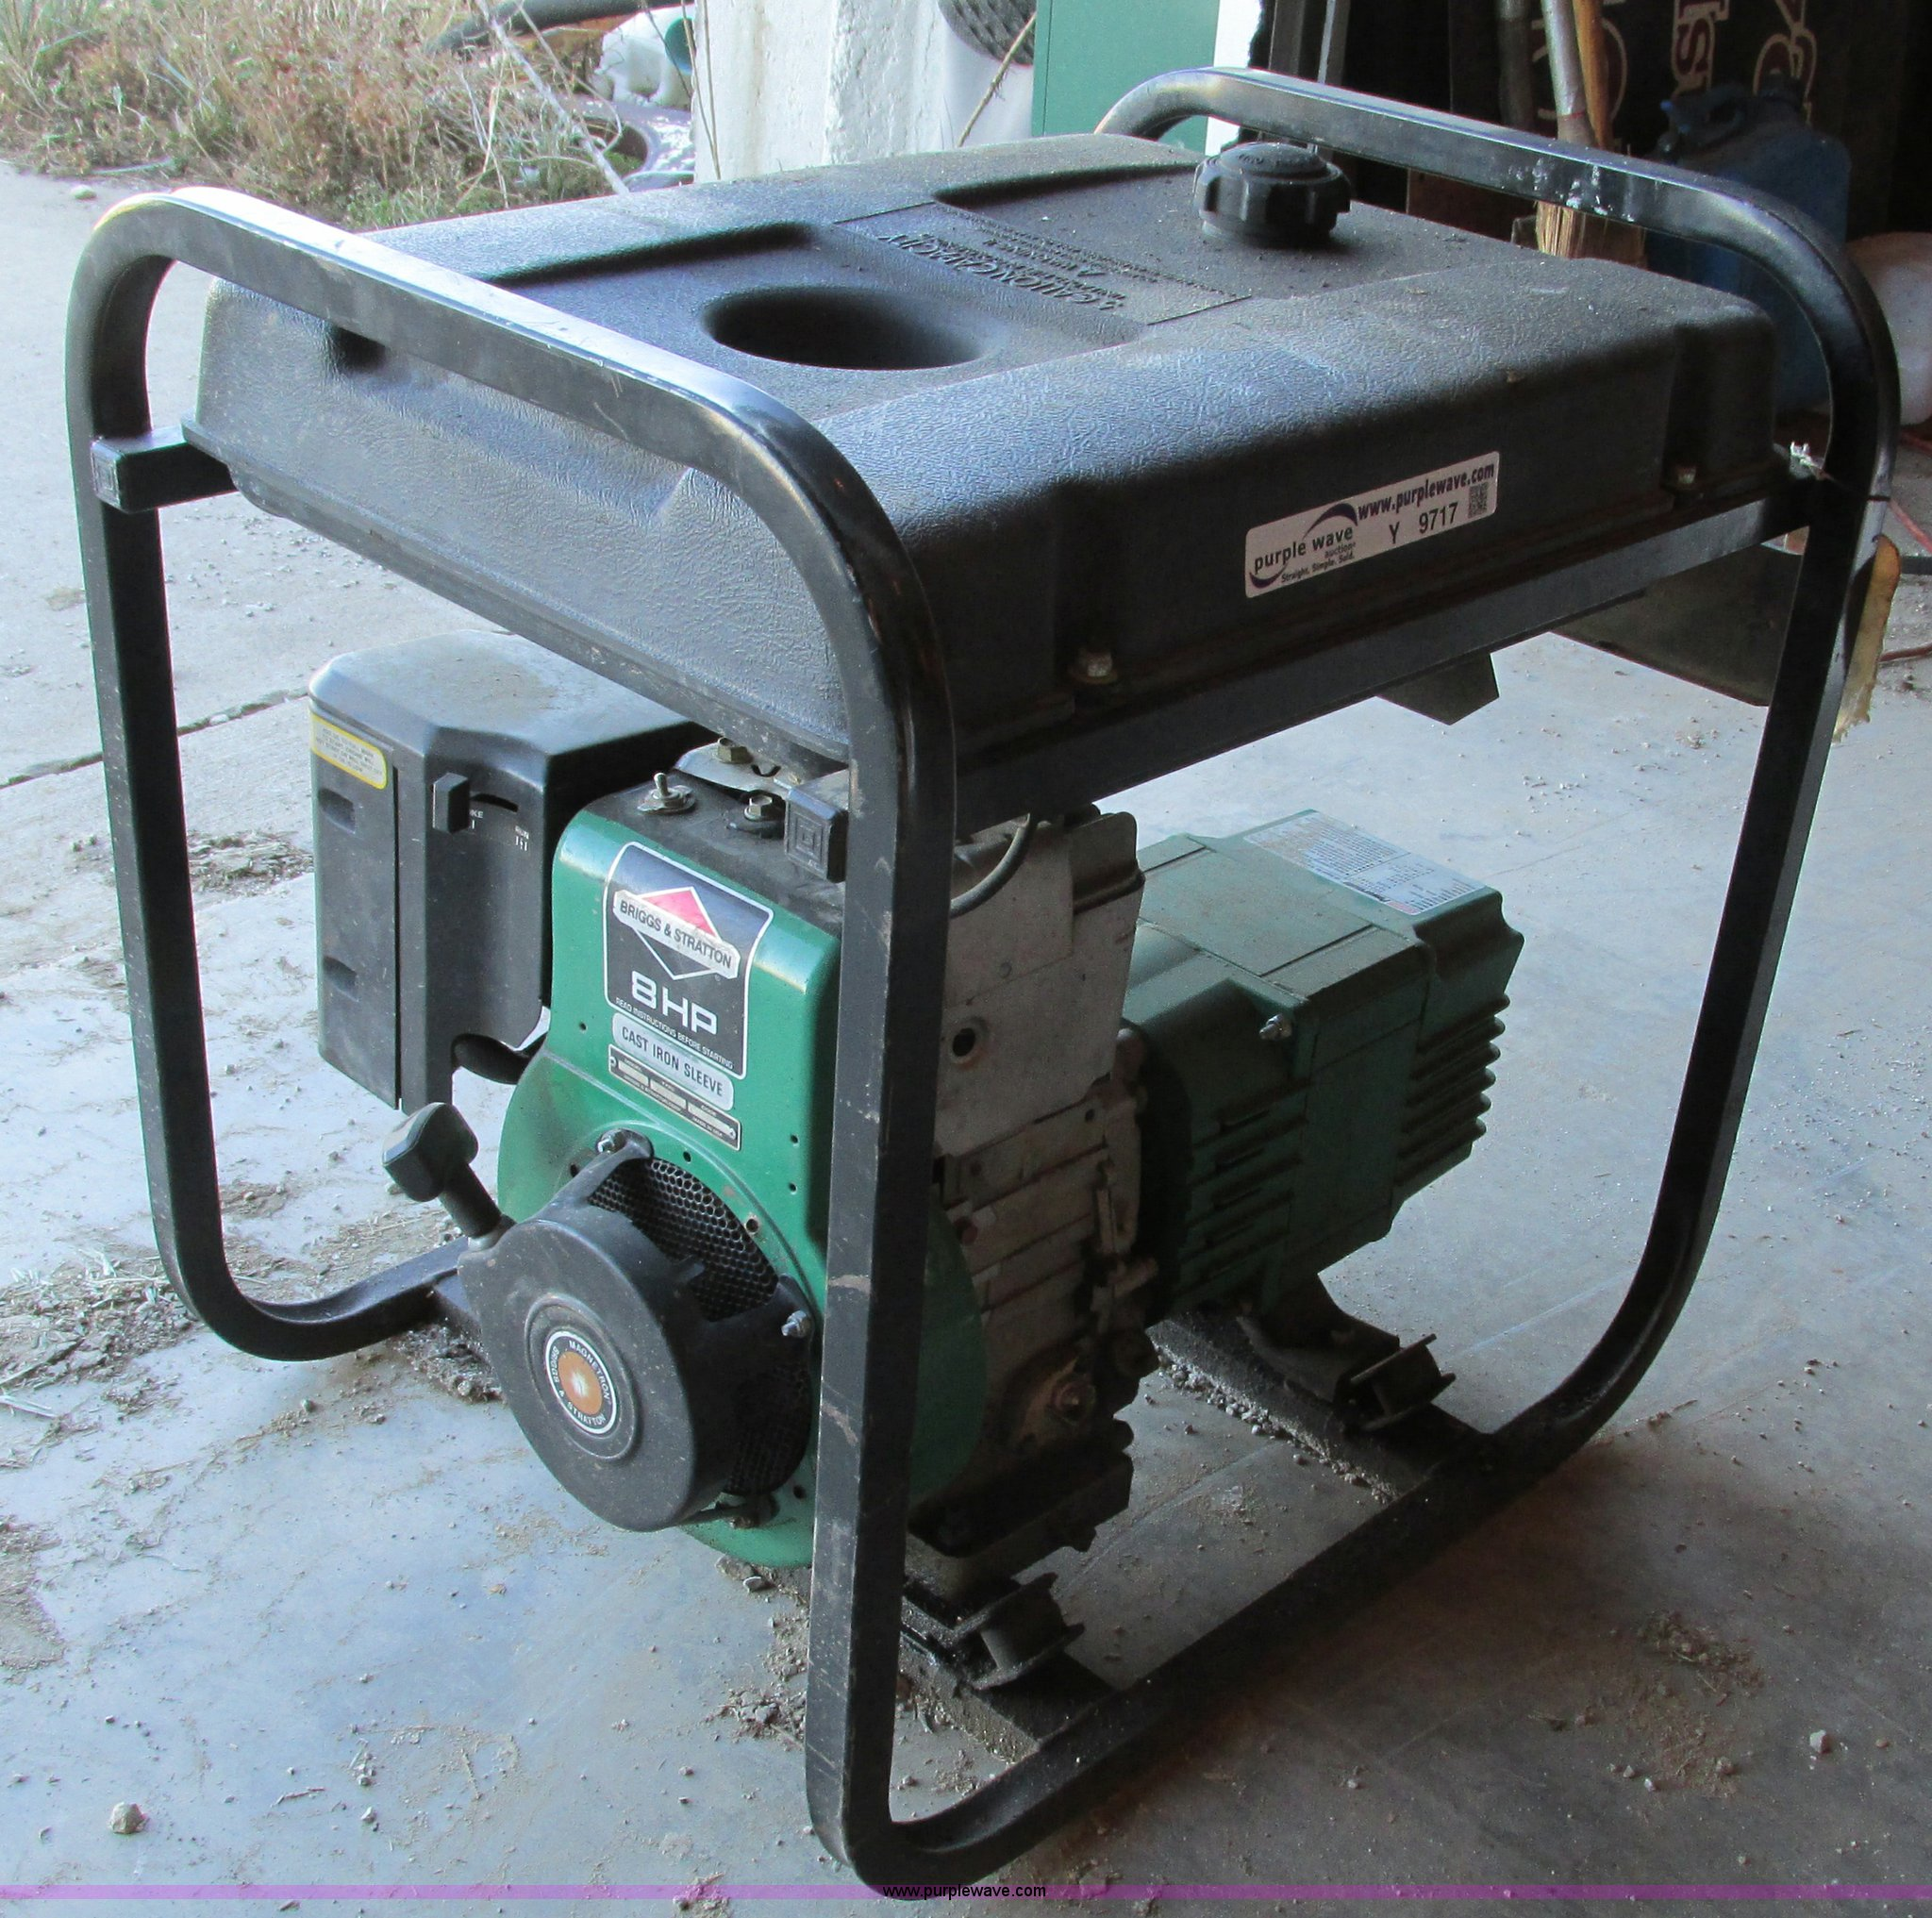 Coleman powermate 4000 generator item y9717 sold januar powermate 4000 generator full size in new window asfbconference2016 Image collections